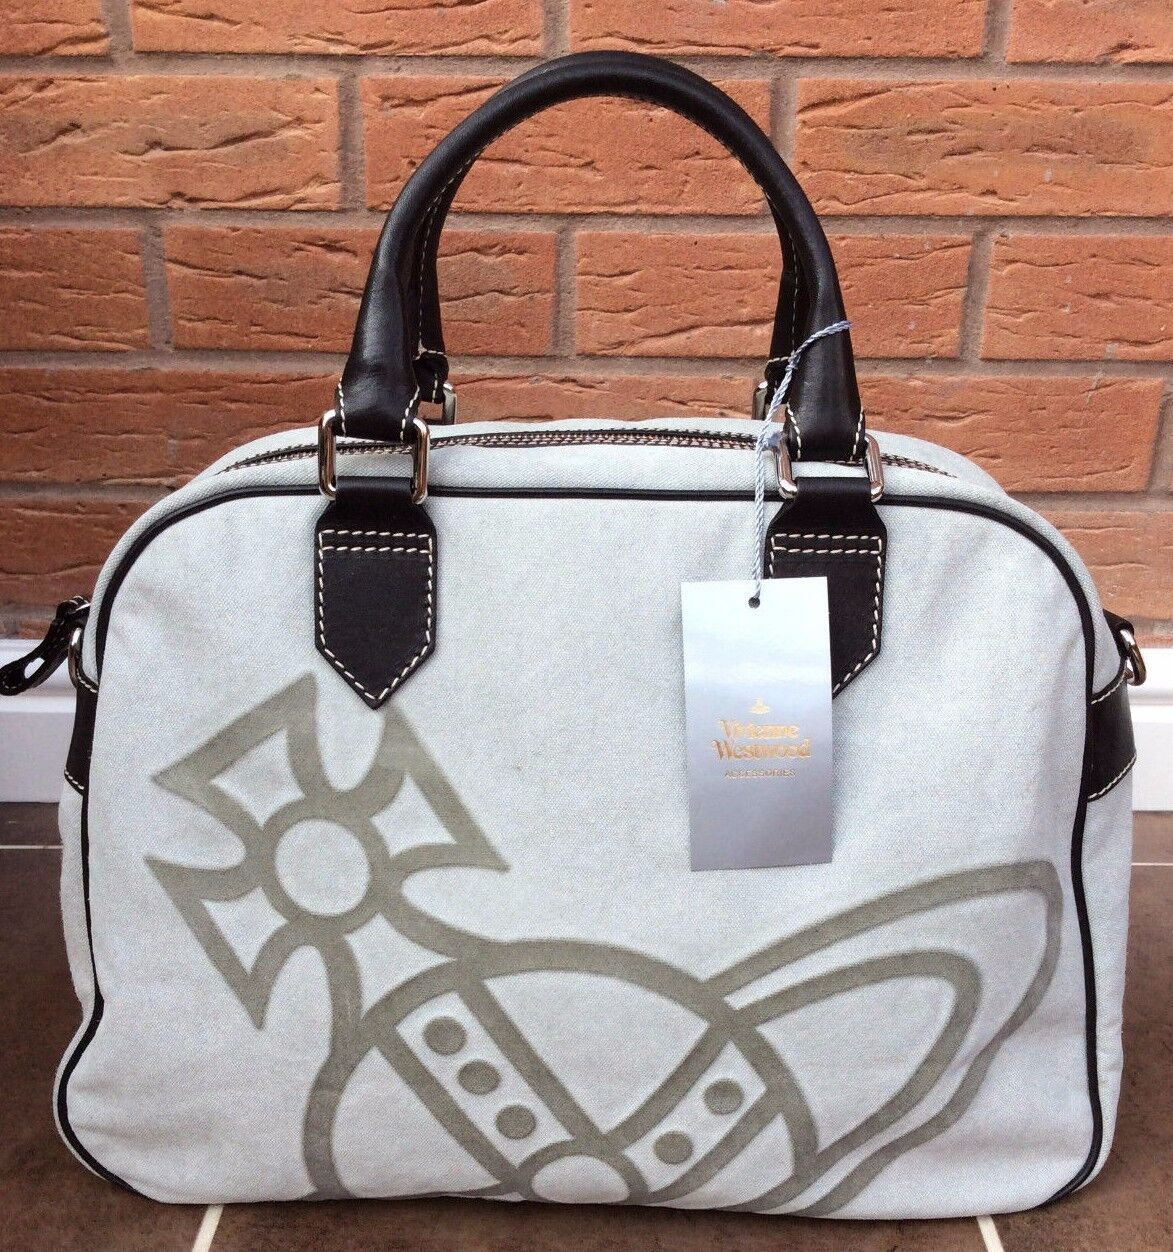 1436d56987 Vivienne Westwood Large Iconic Orb Tote Overnight Bag Retail Made in ...